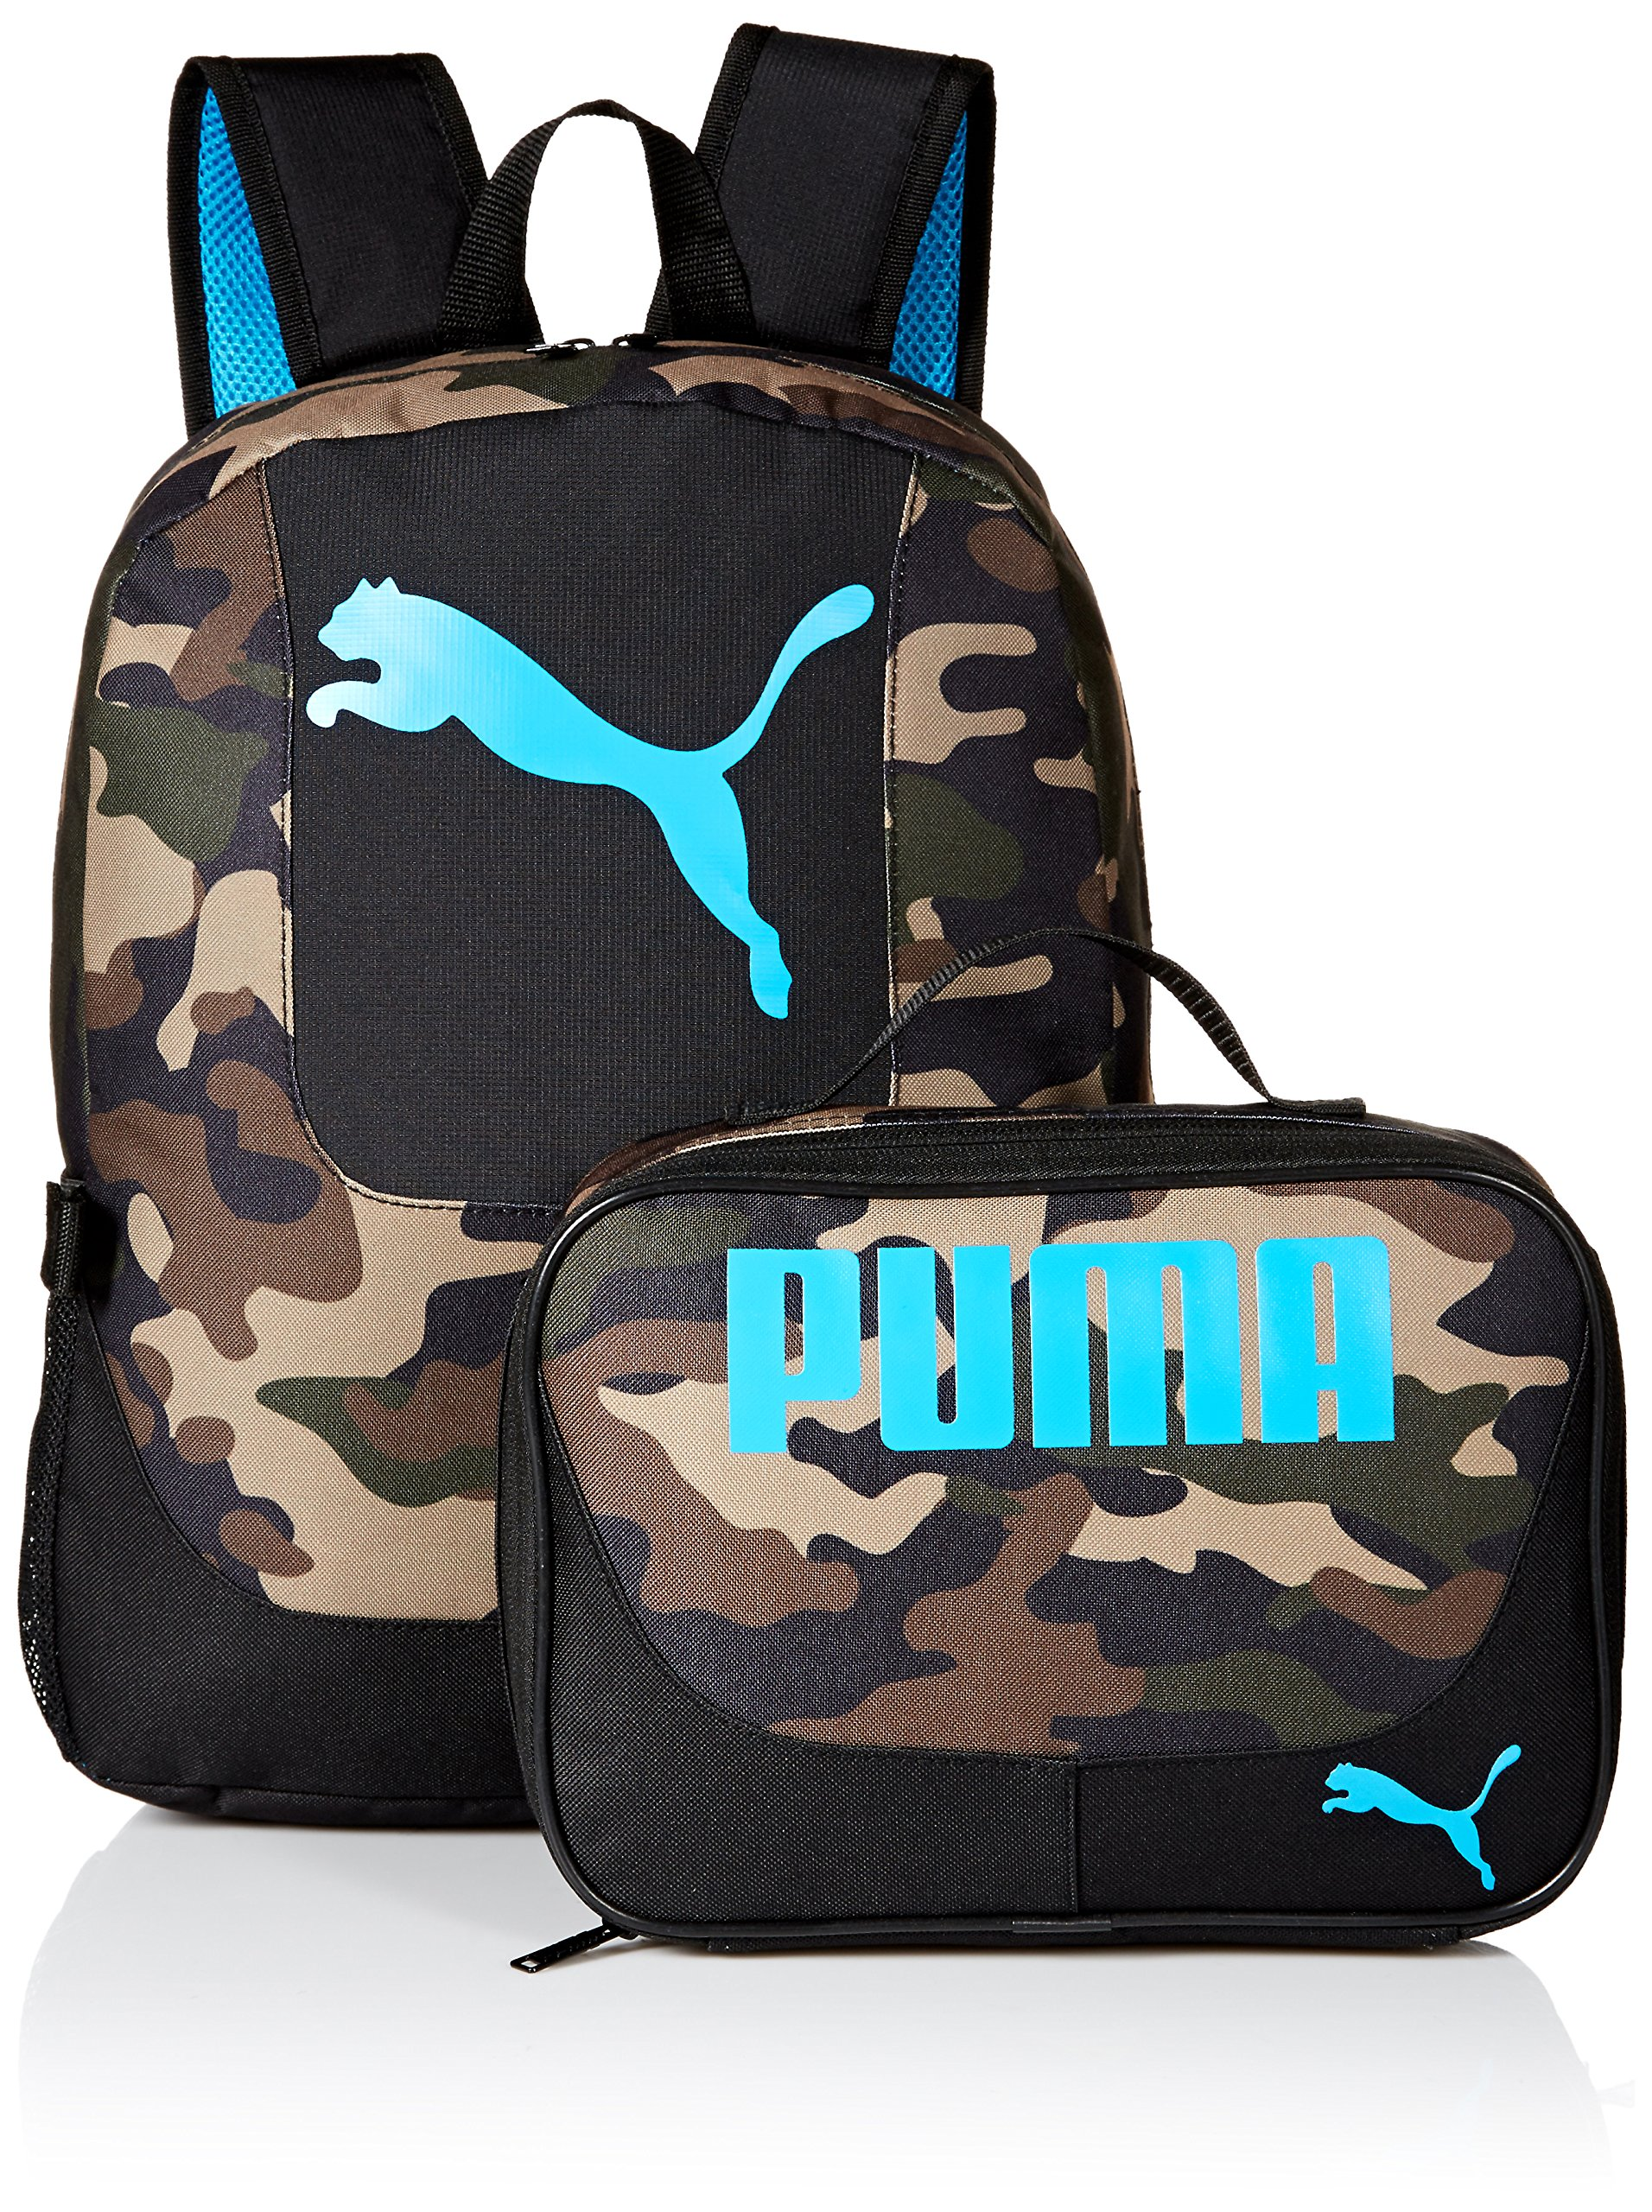 PUMA Little Boys' Backpacks and Lunch Boxes, Camo/Blue Kit, Youth